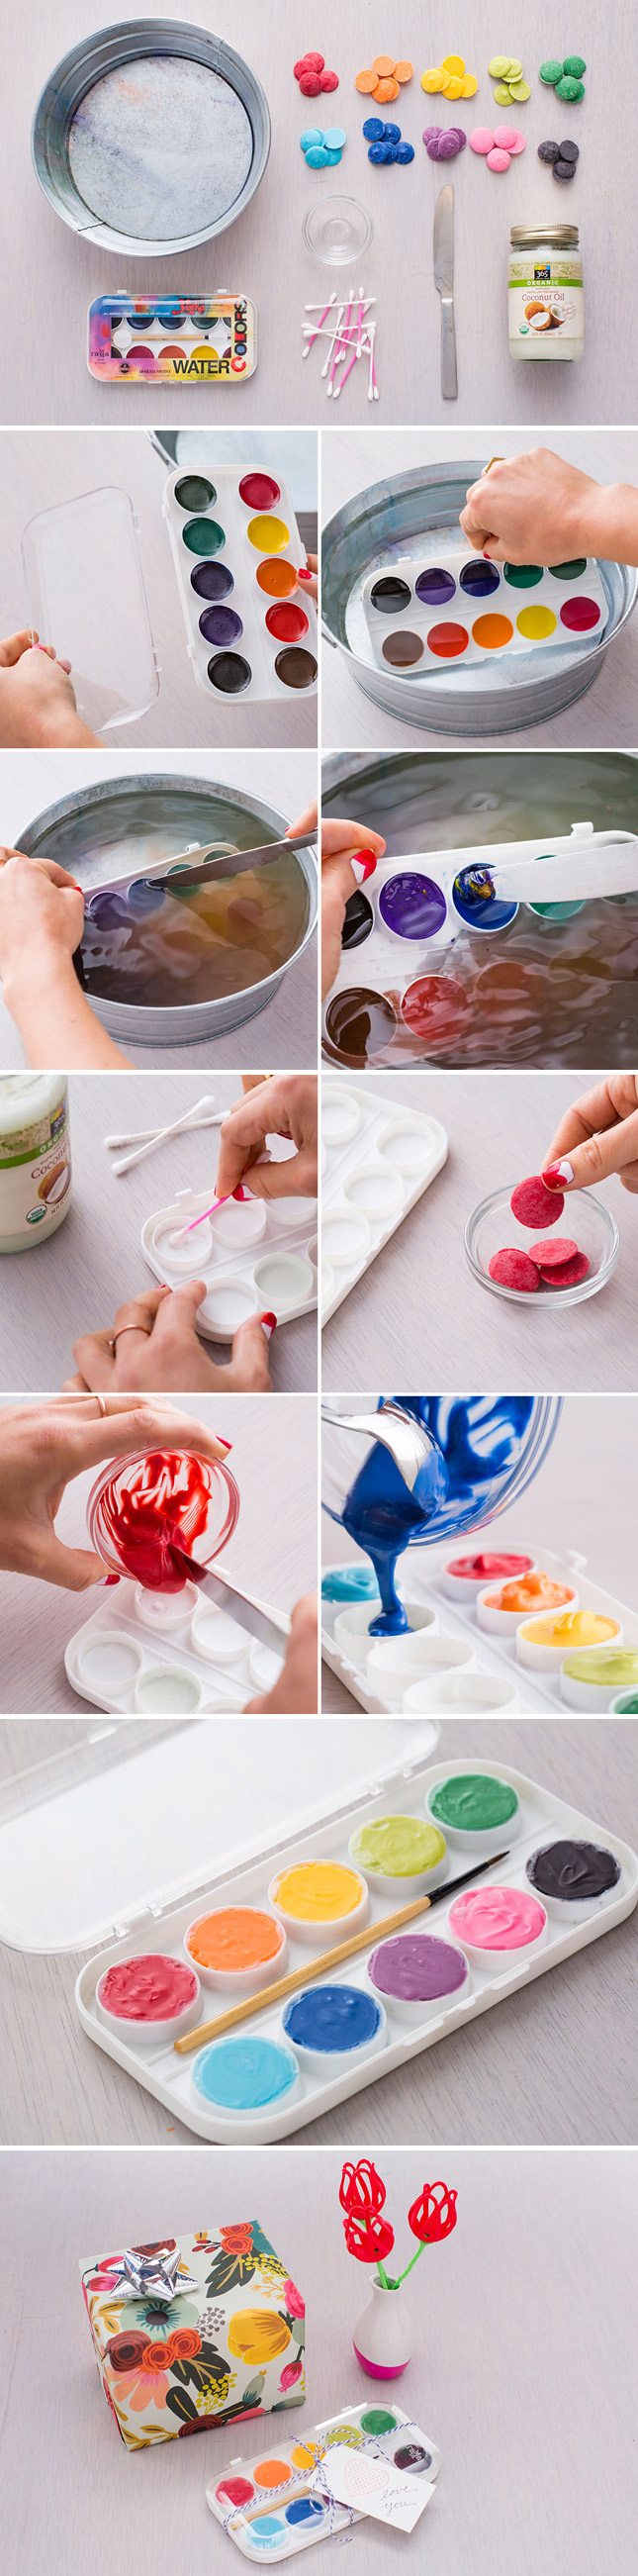 DIY your own box of chocolate for Valentine's Day using a paint palette.